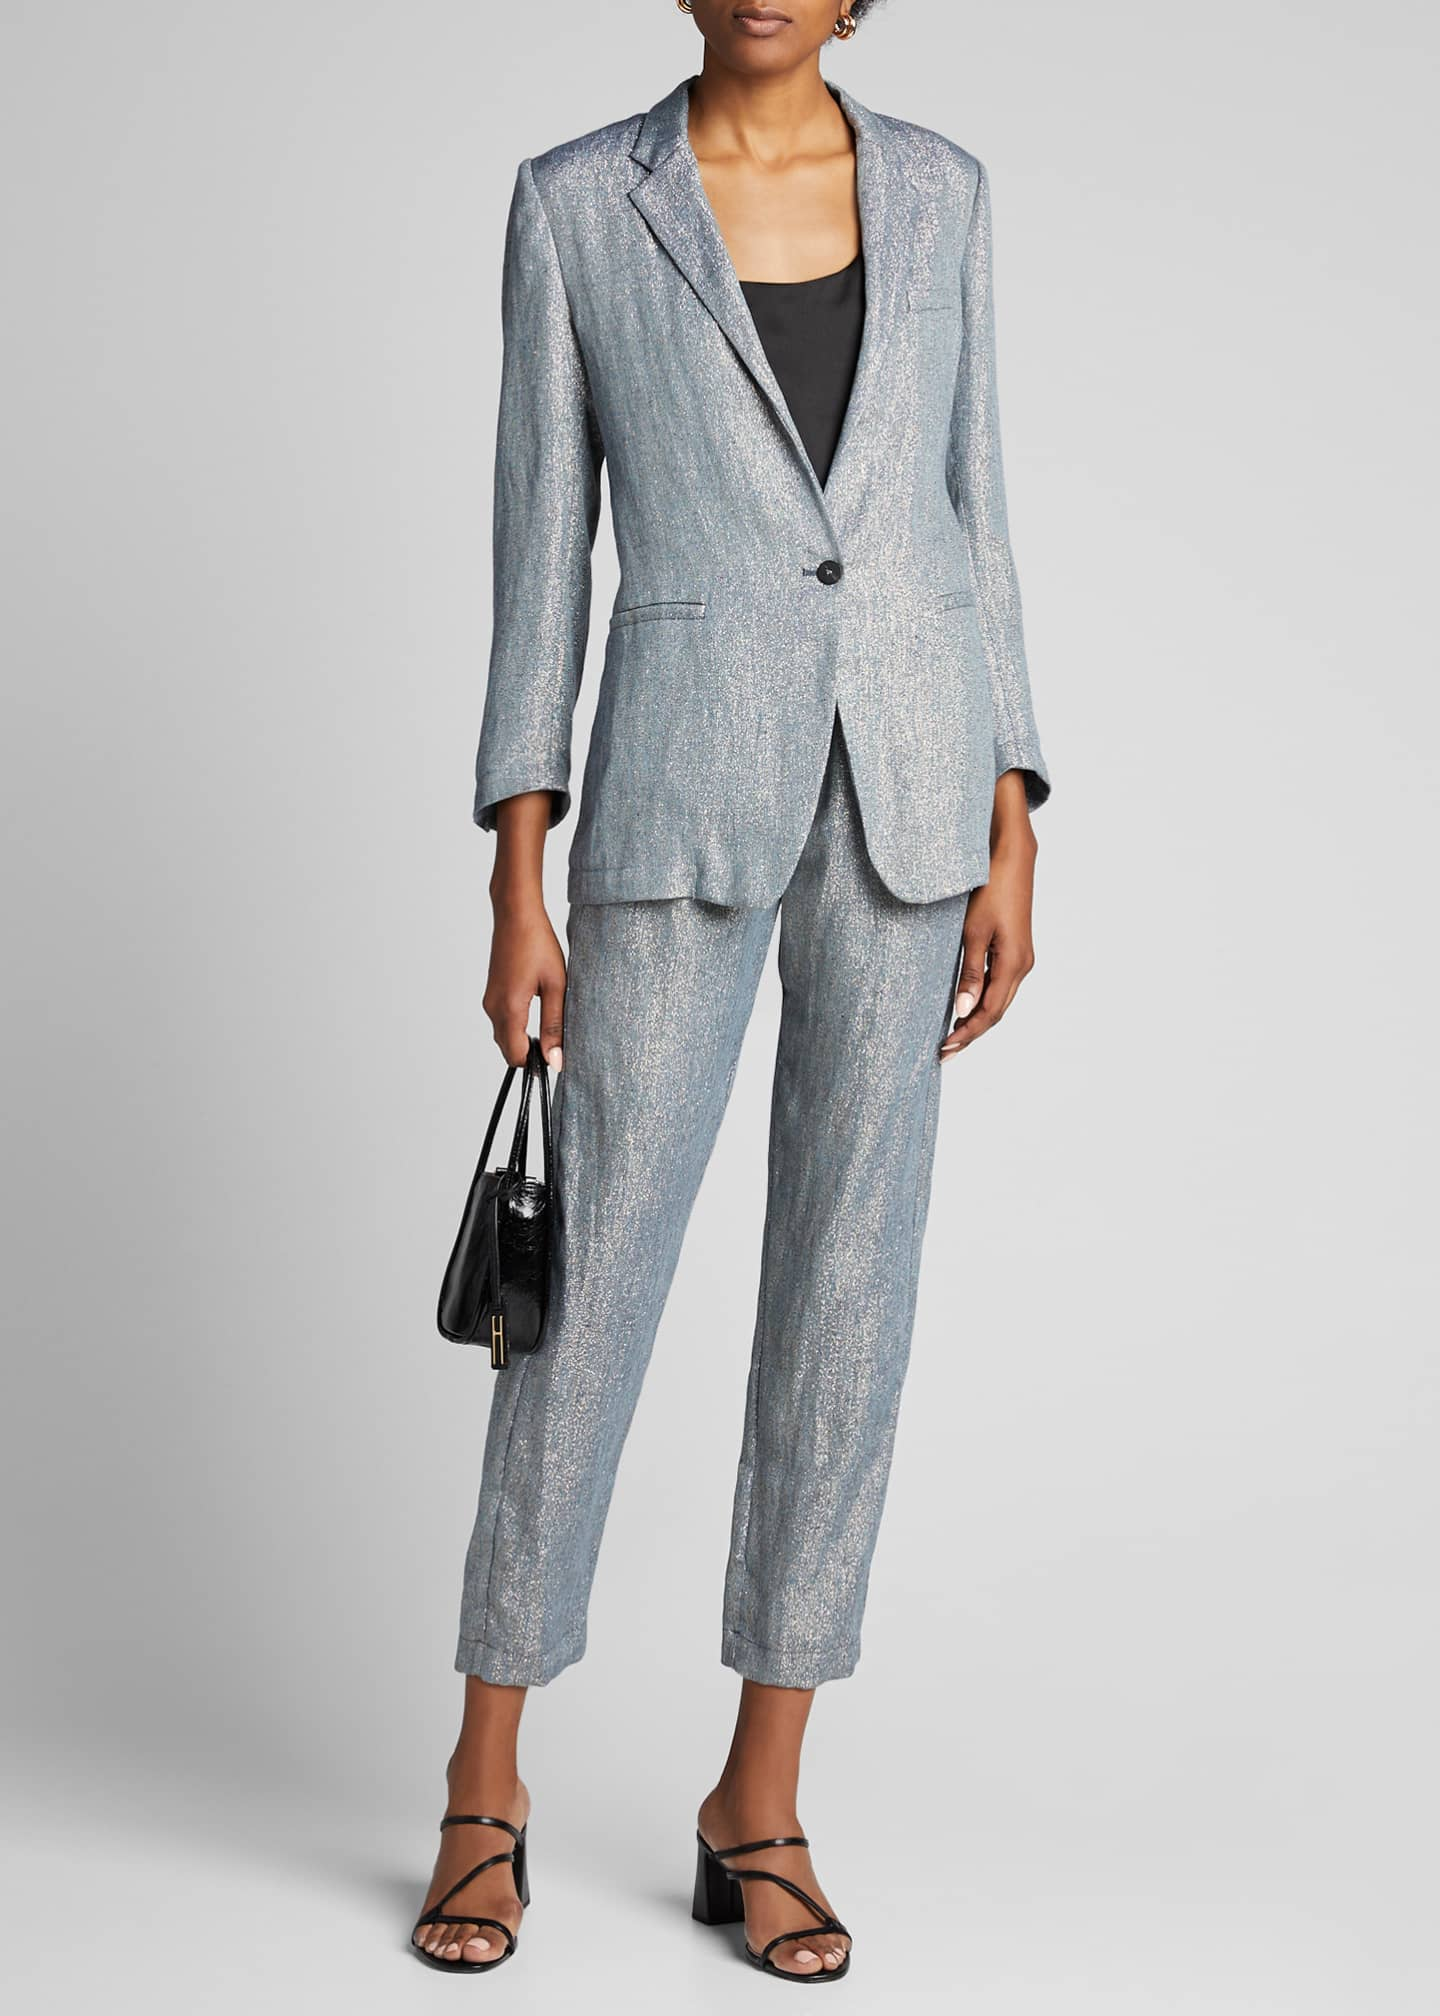 Forte Forte Metallic Linen Single-Button Jacket